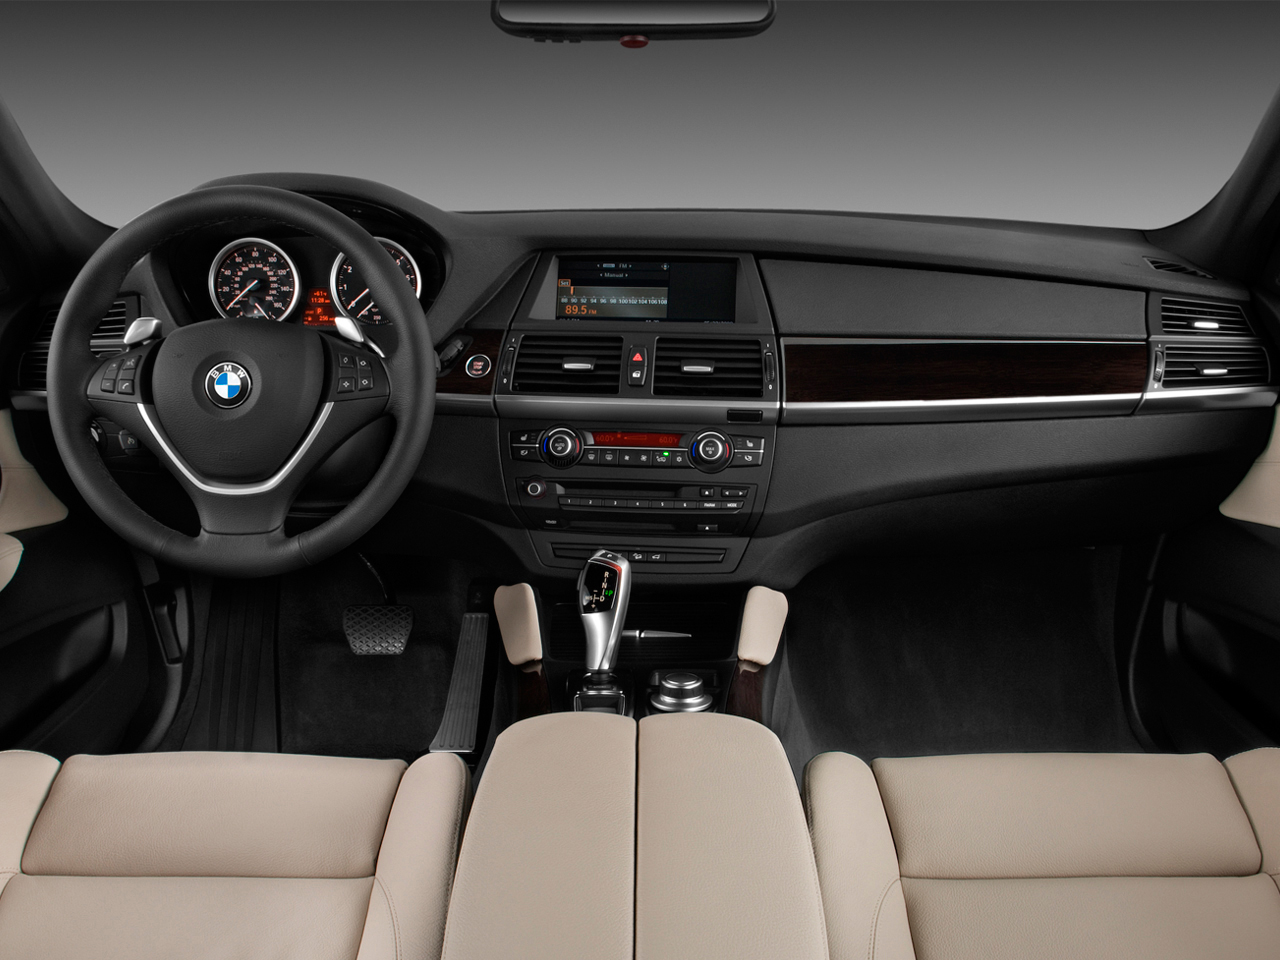 BMW Convertible 2012 bmw x5 5.0 review 2009 BMW X6 xDrive50i vs 2009 Infiniti FX50 - Latest News ...